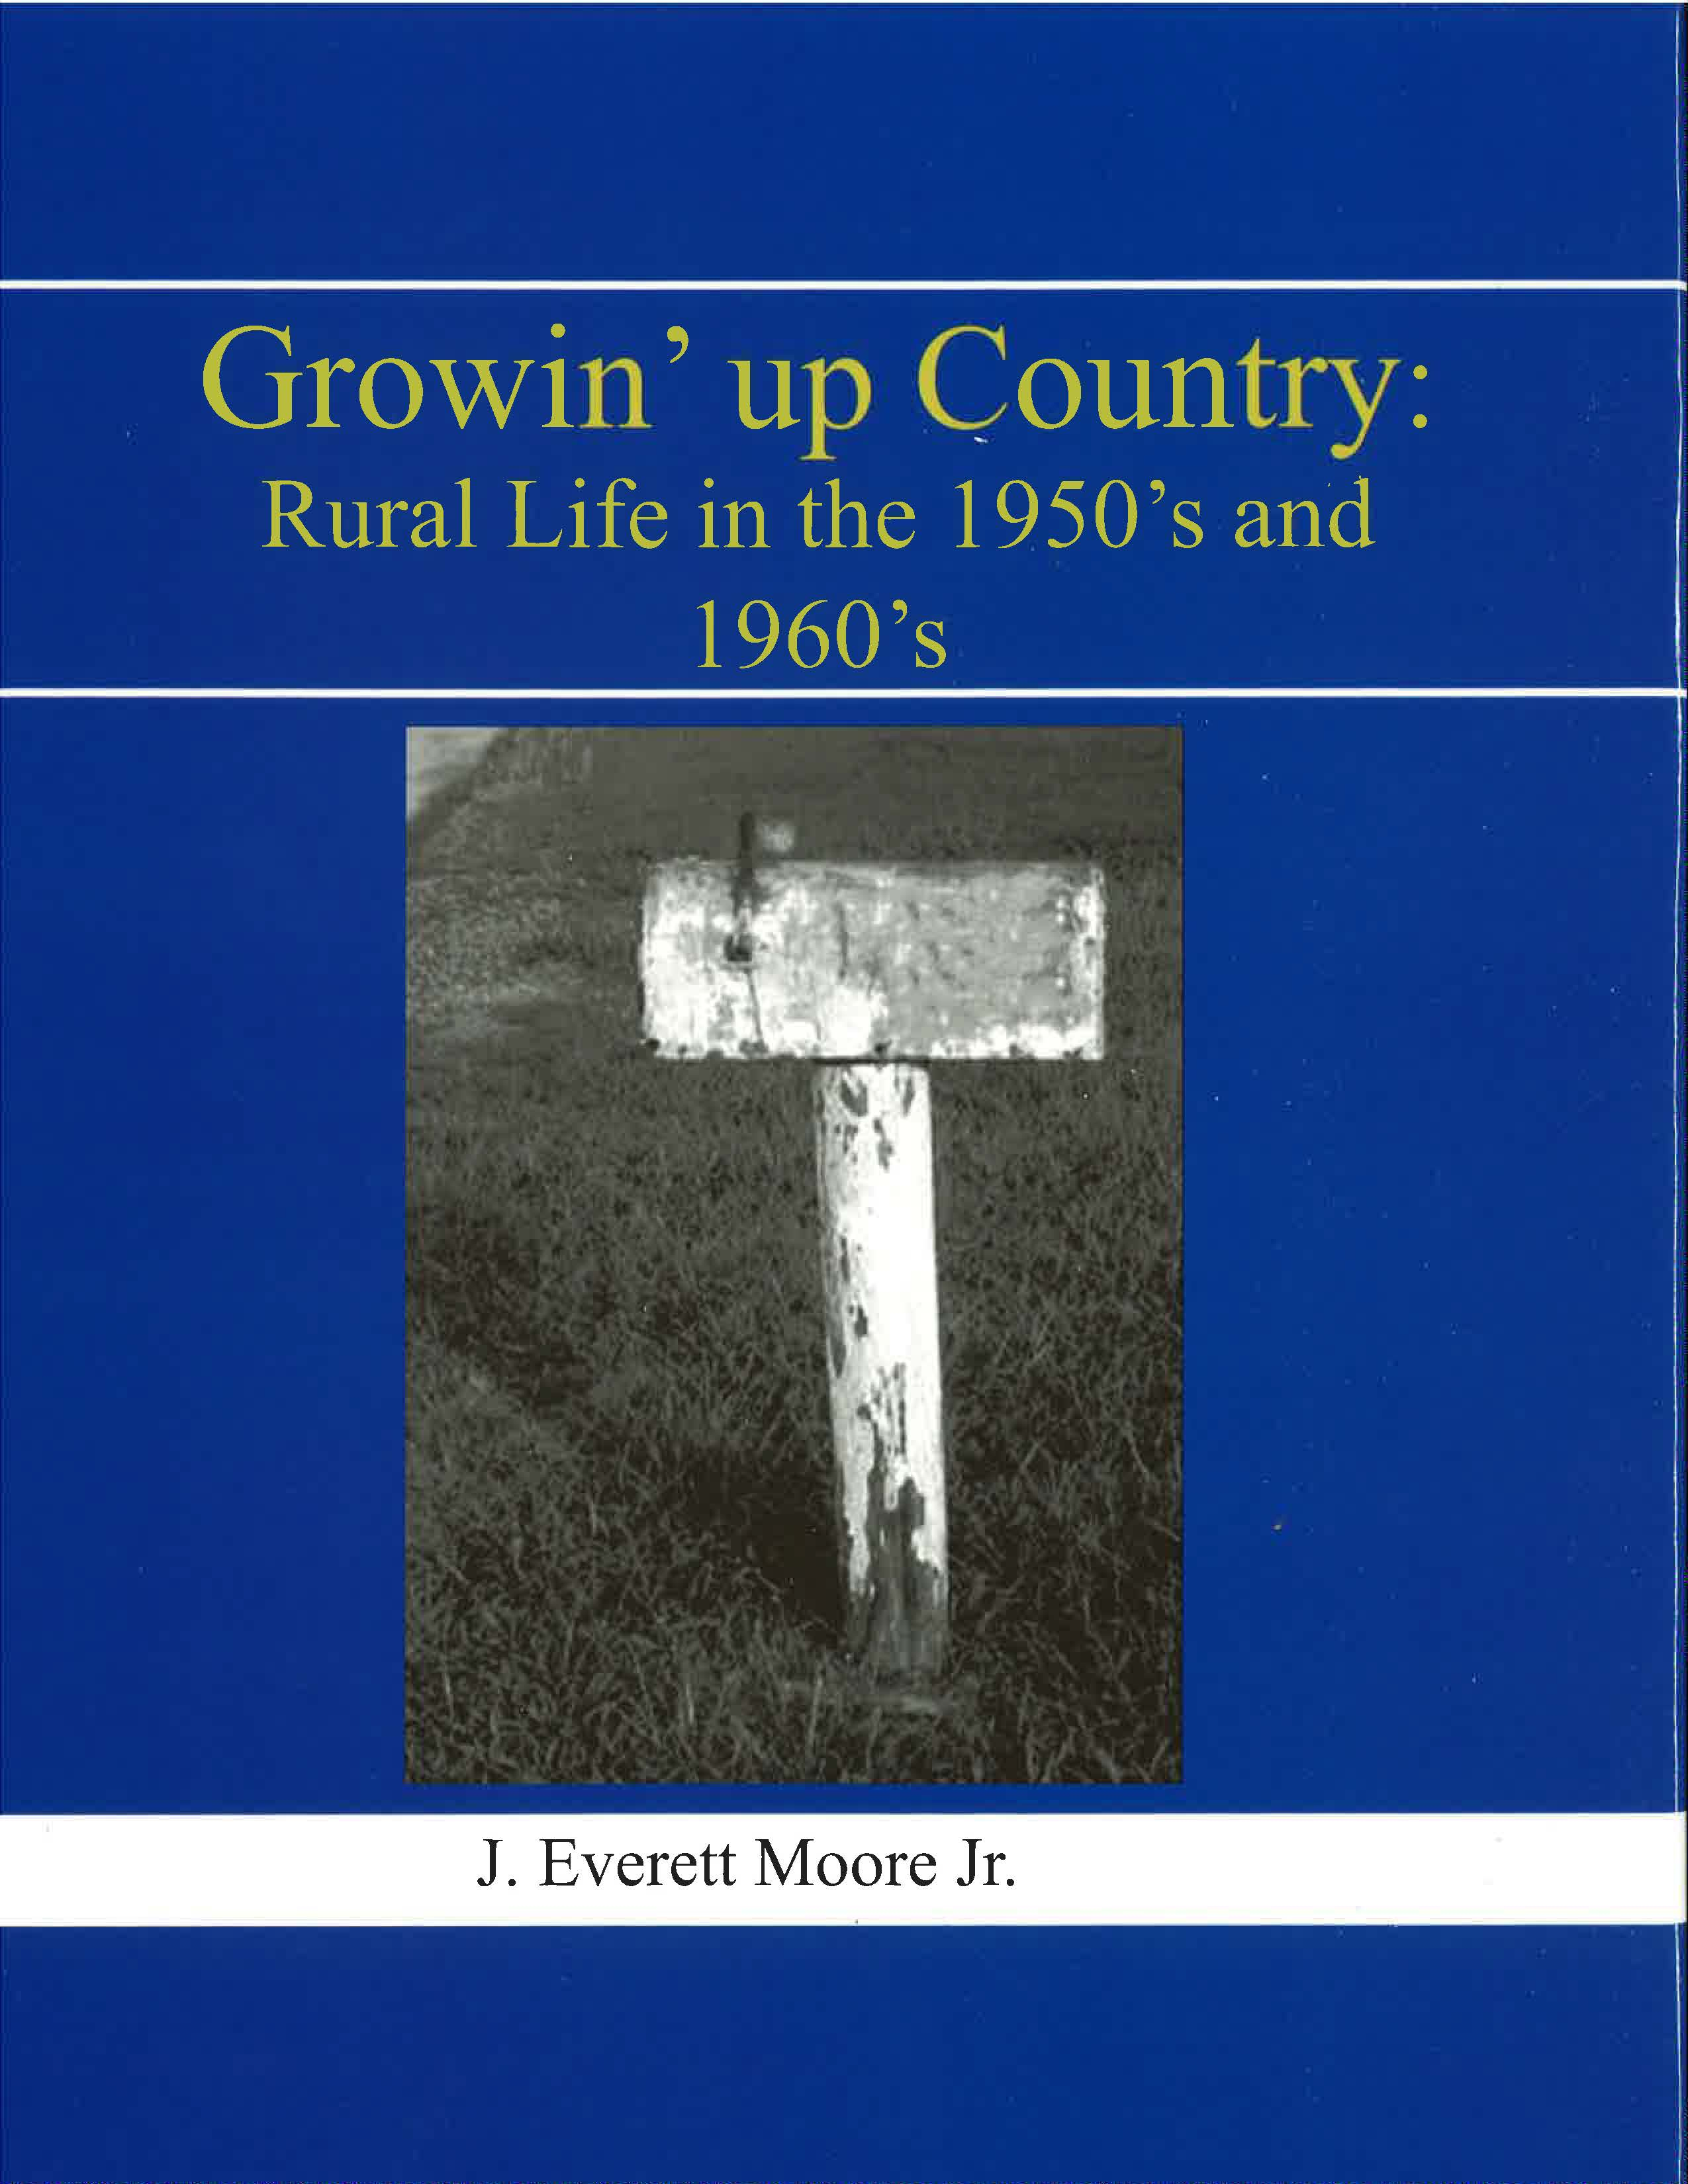 Growin' Up Country, by J. Everett Moore Jr., 2012, 229 pp., HARDCOVER. Prices reflect the cost of the book PLUS S&H fee of $5.00.